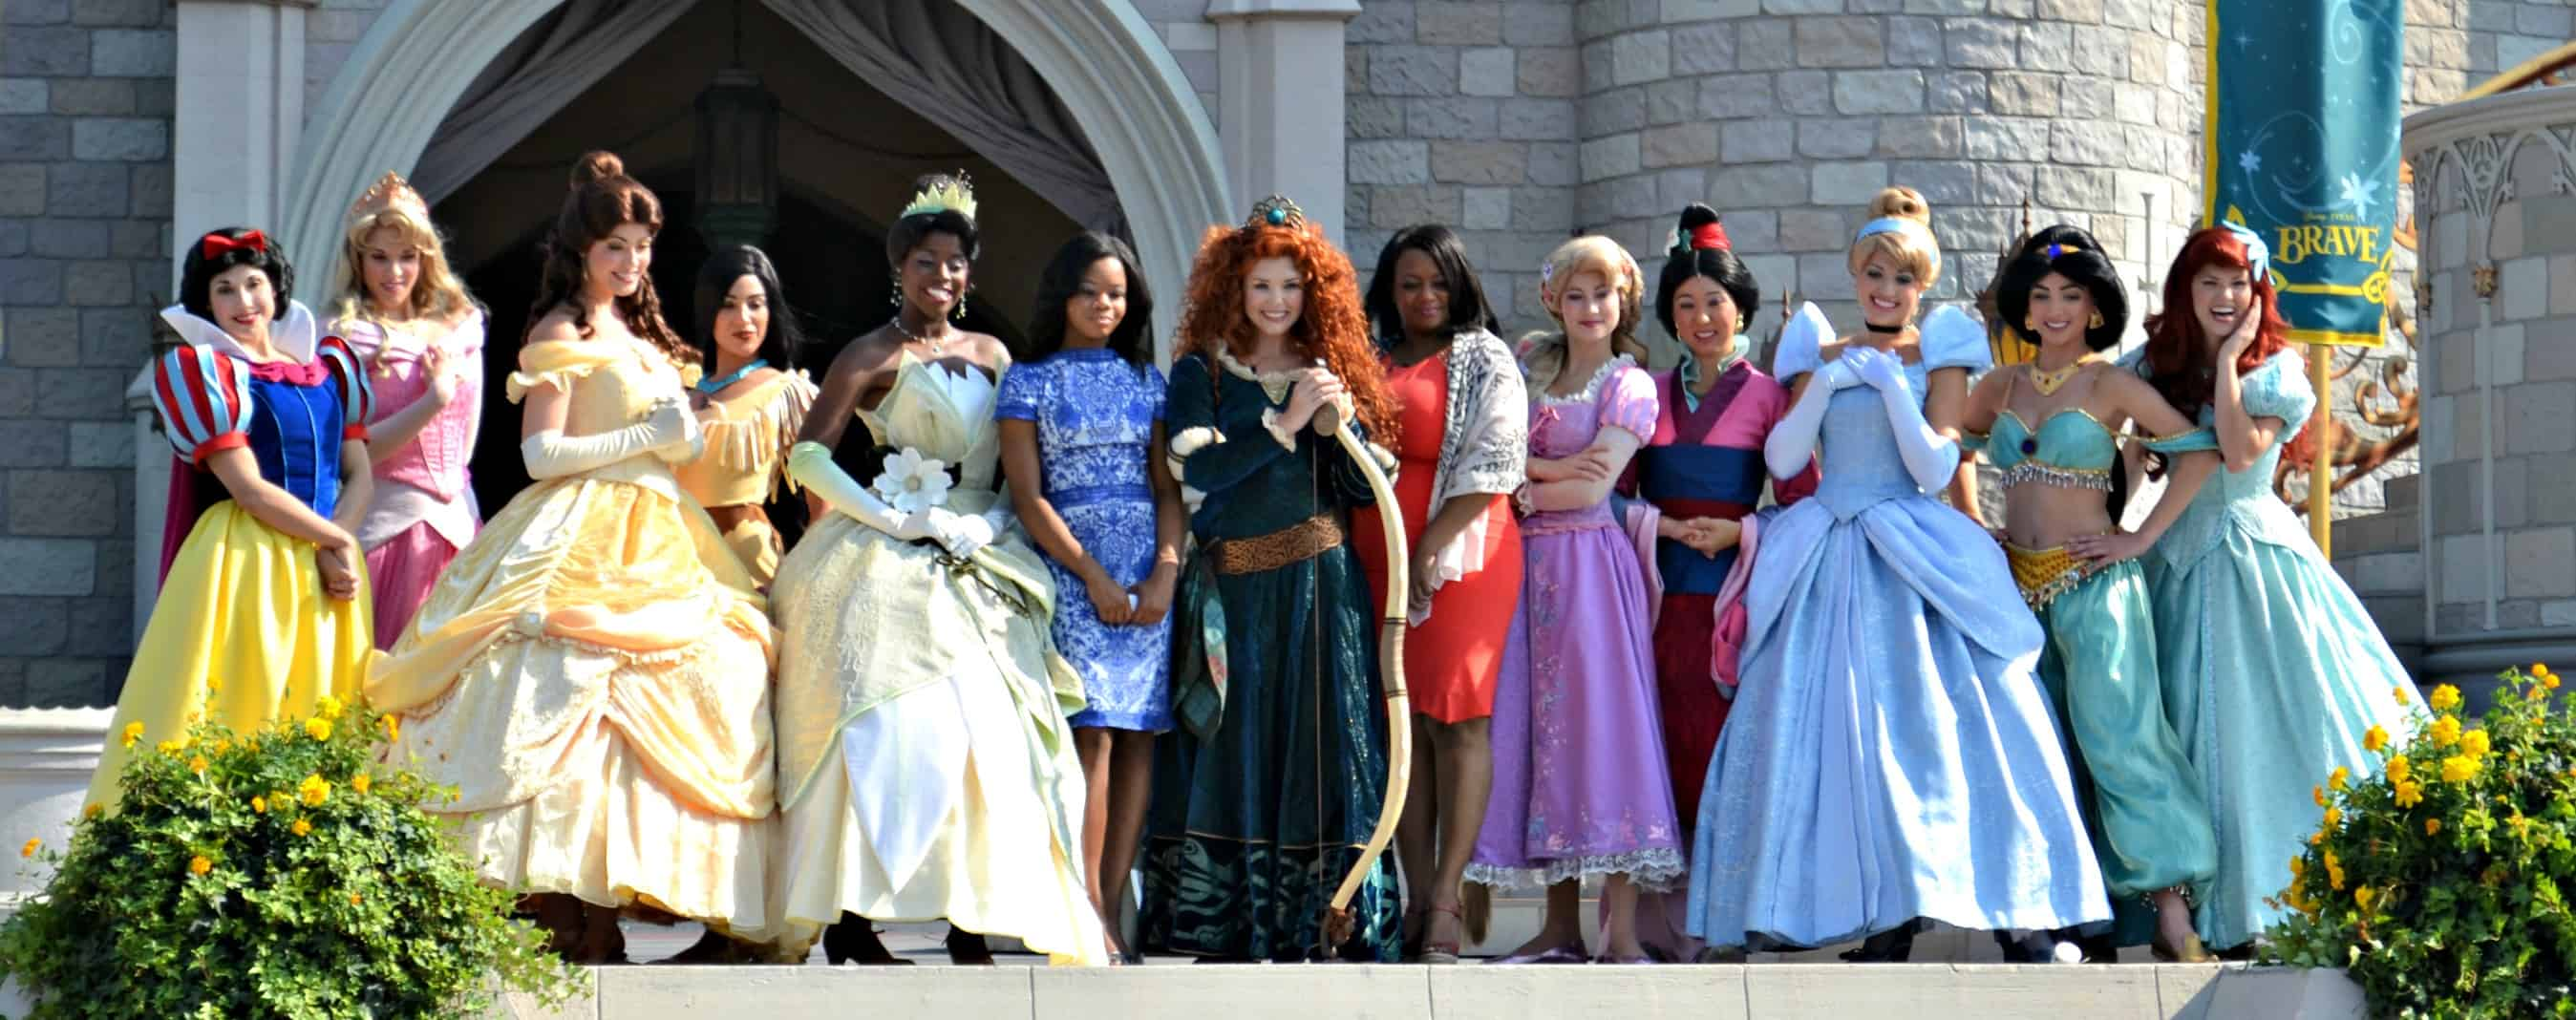 But there is a list of requirements that each Disney princess has to get through to become an official princess. Because of this list, there have been some ...